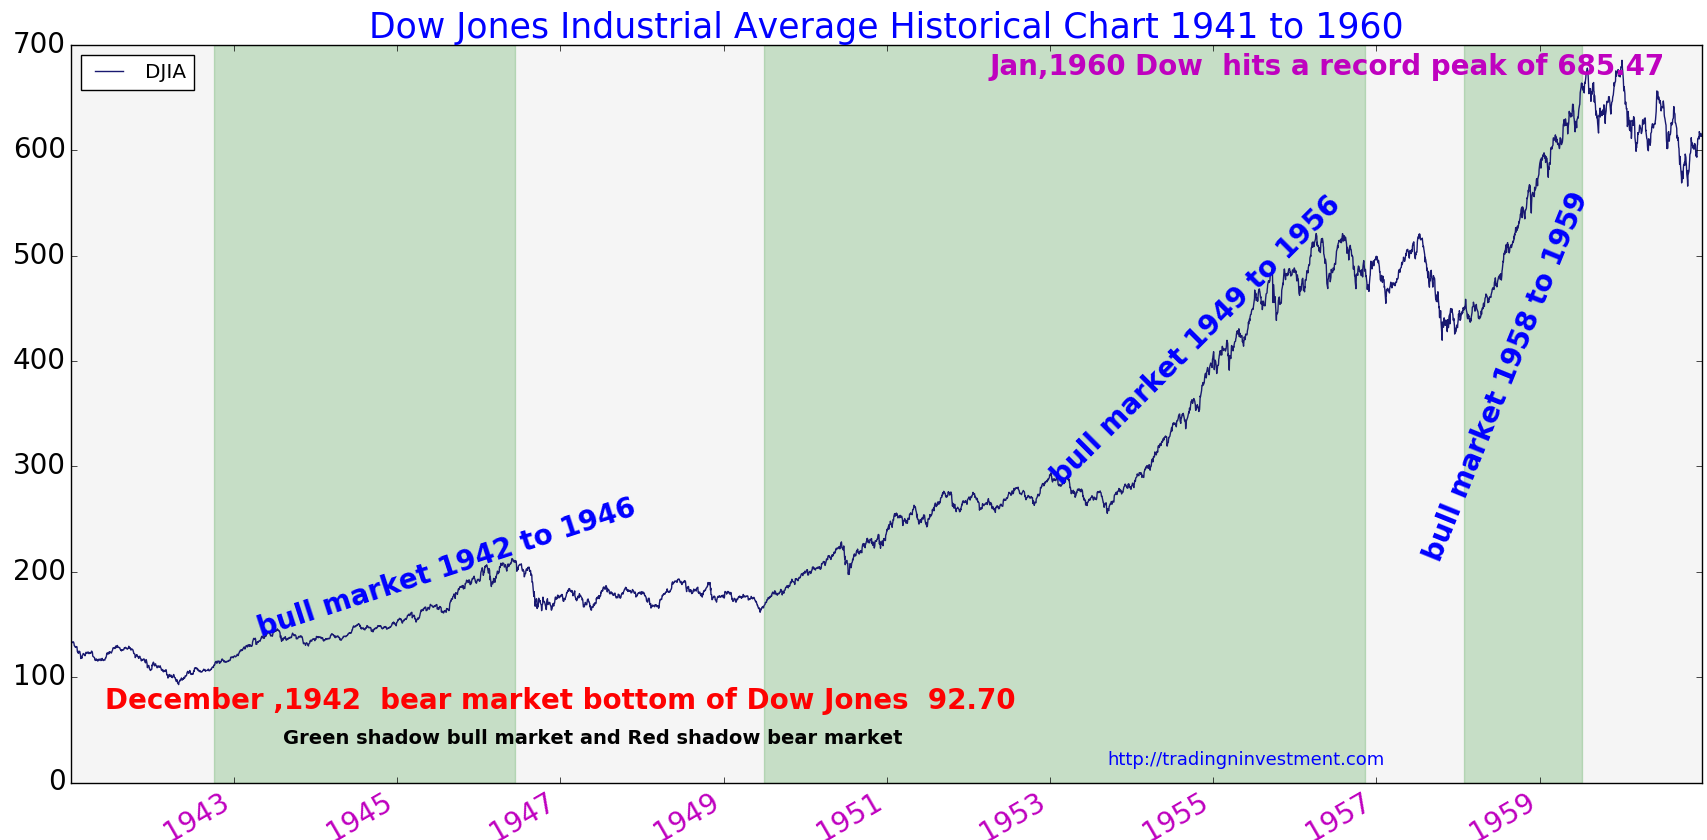 Djia Quote Dow Jones History Chart 1941 To 1960 Investment And Trading .